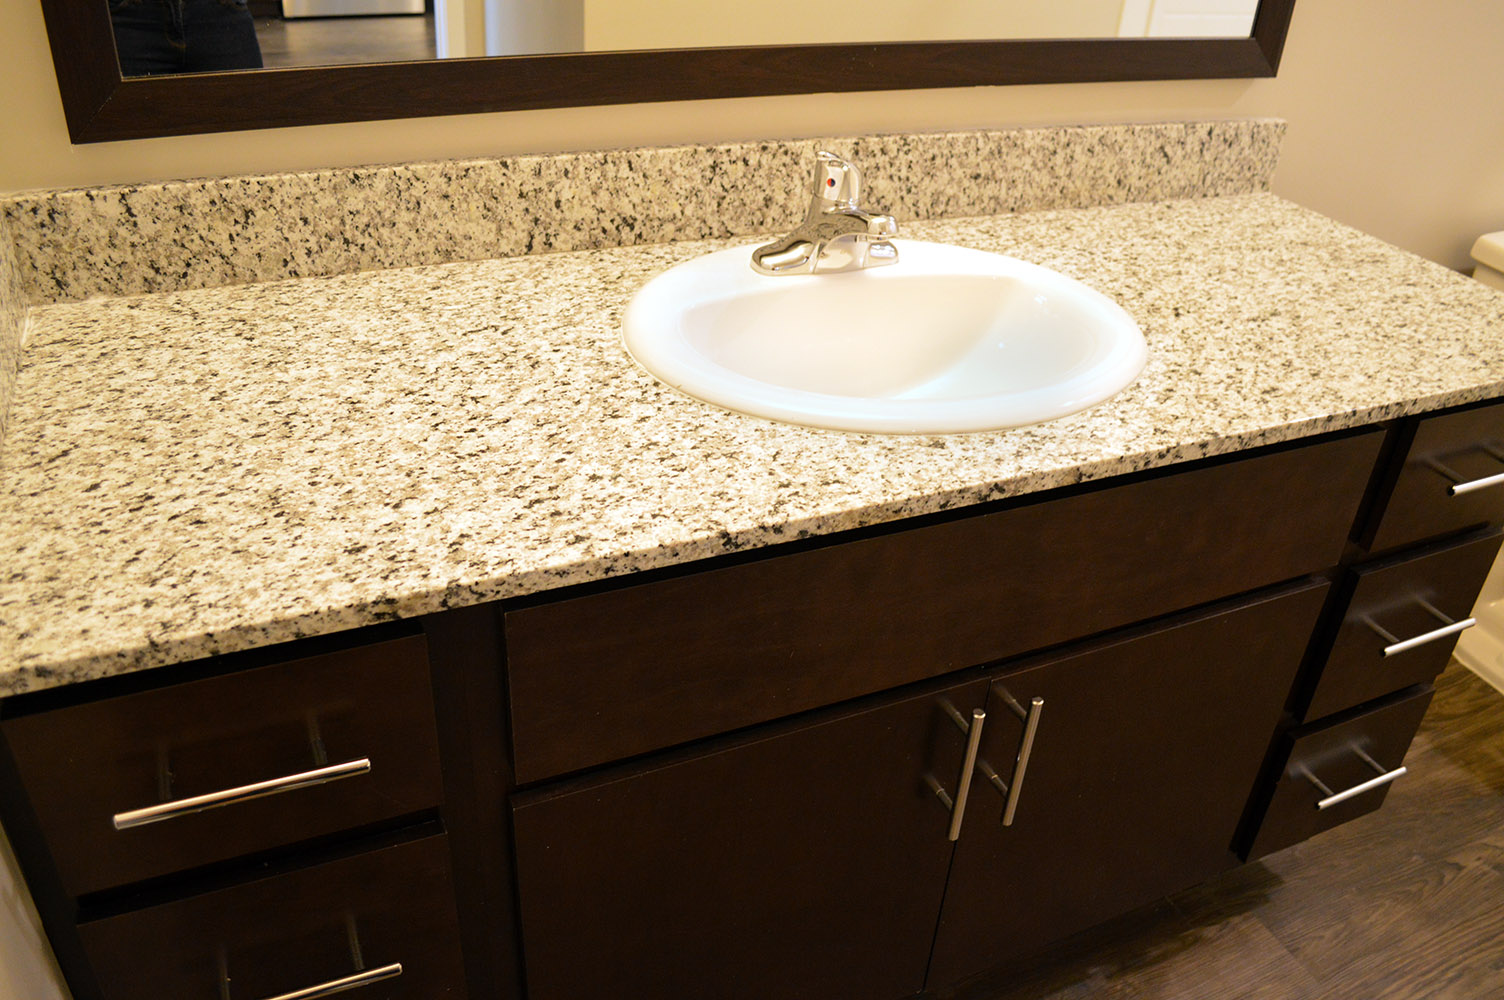 Main & Stone apartments (Greenville, SC) brought the luxurious granite countertops in their kitchens to the bathroom vanities and this really ties the surfaces in the apartments together